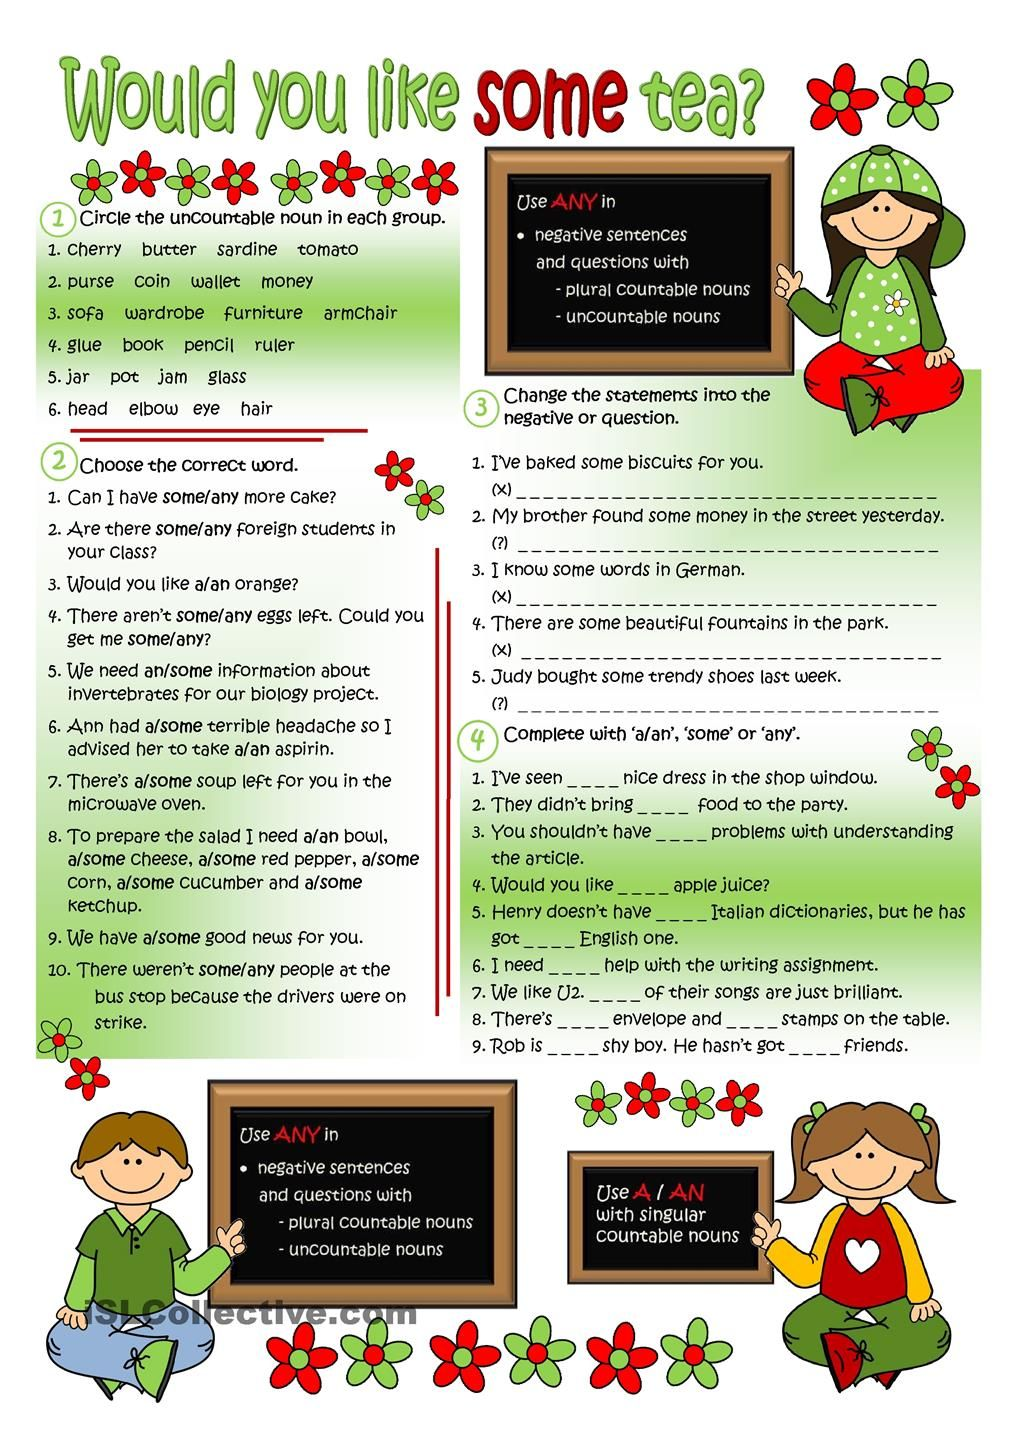 Would you like some tea? English activities Pinterest